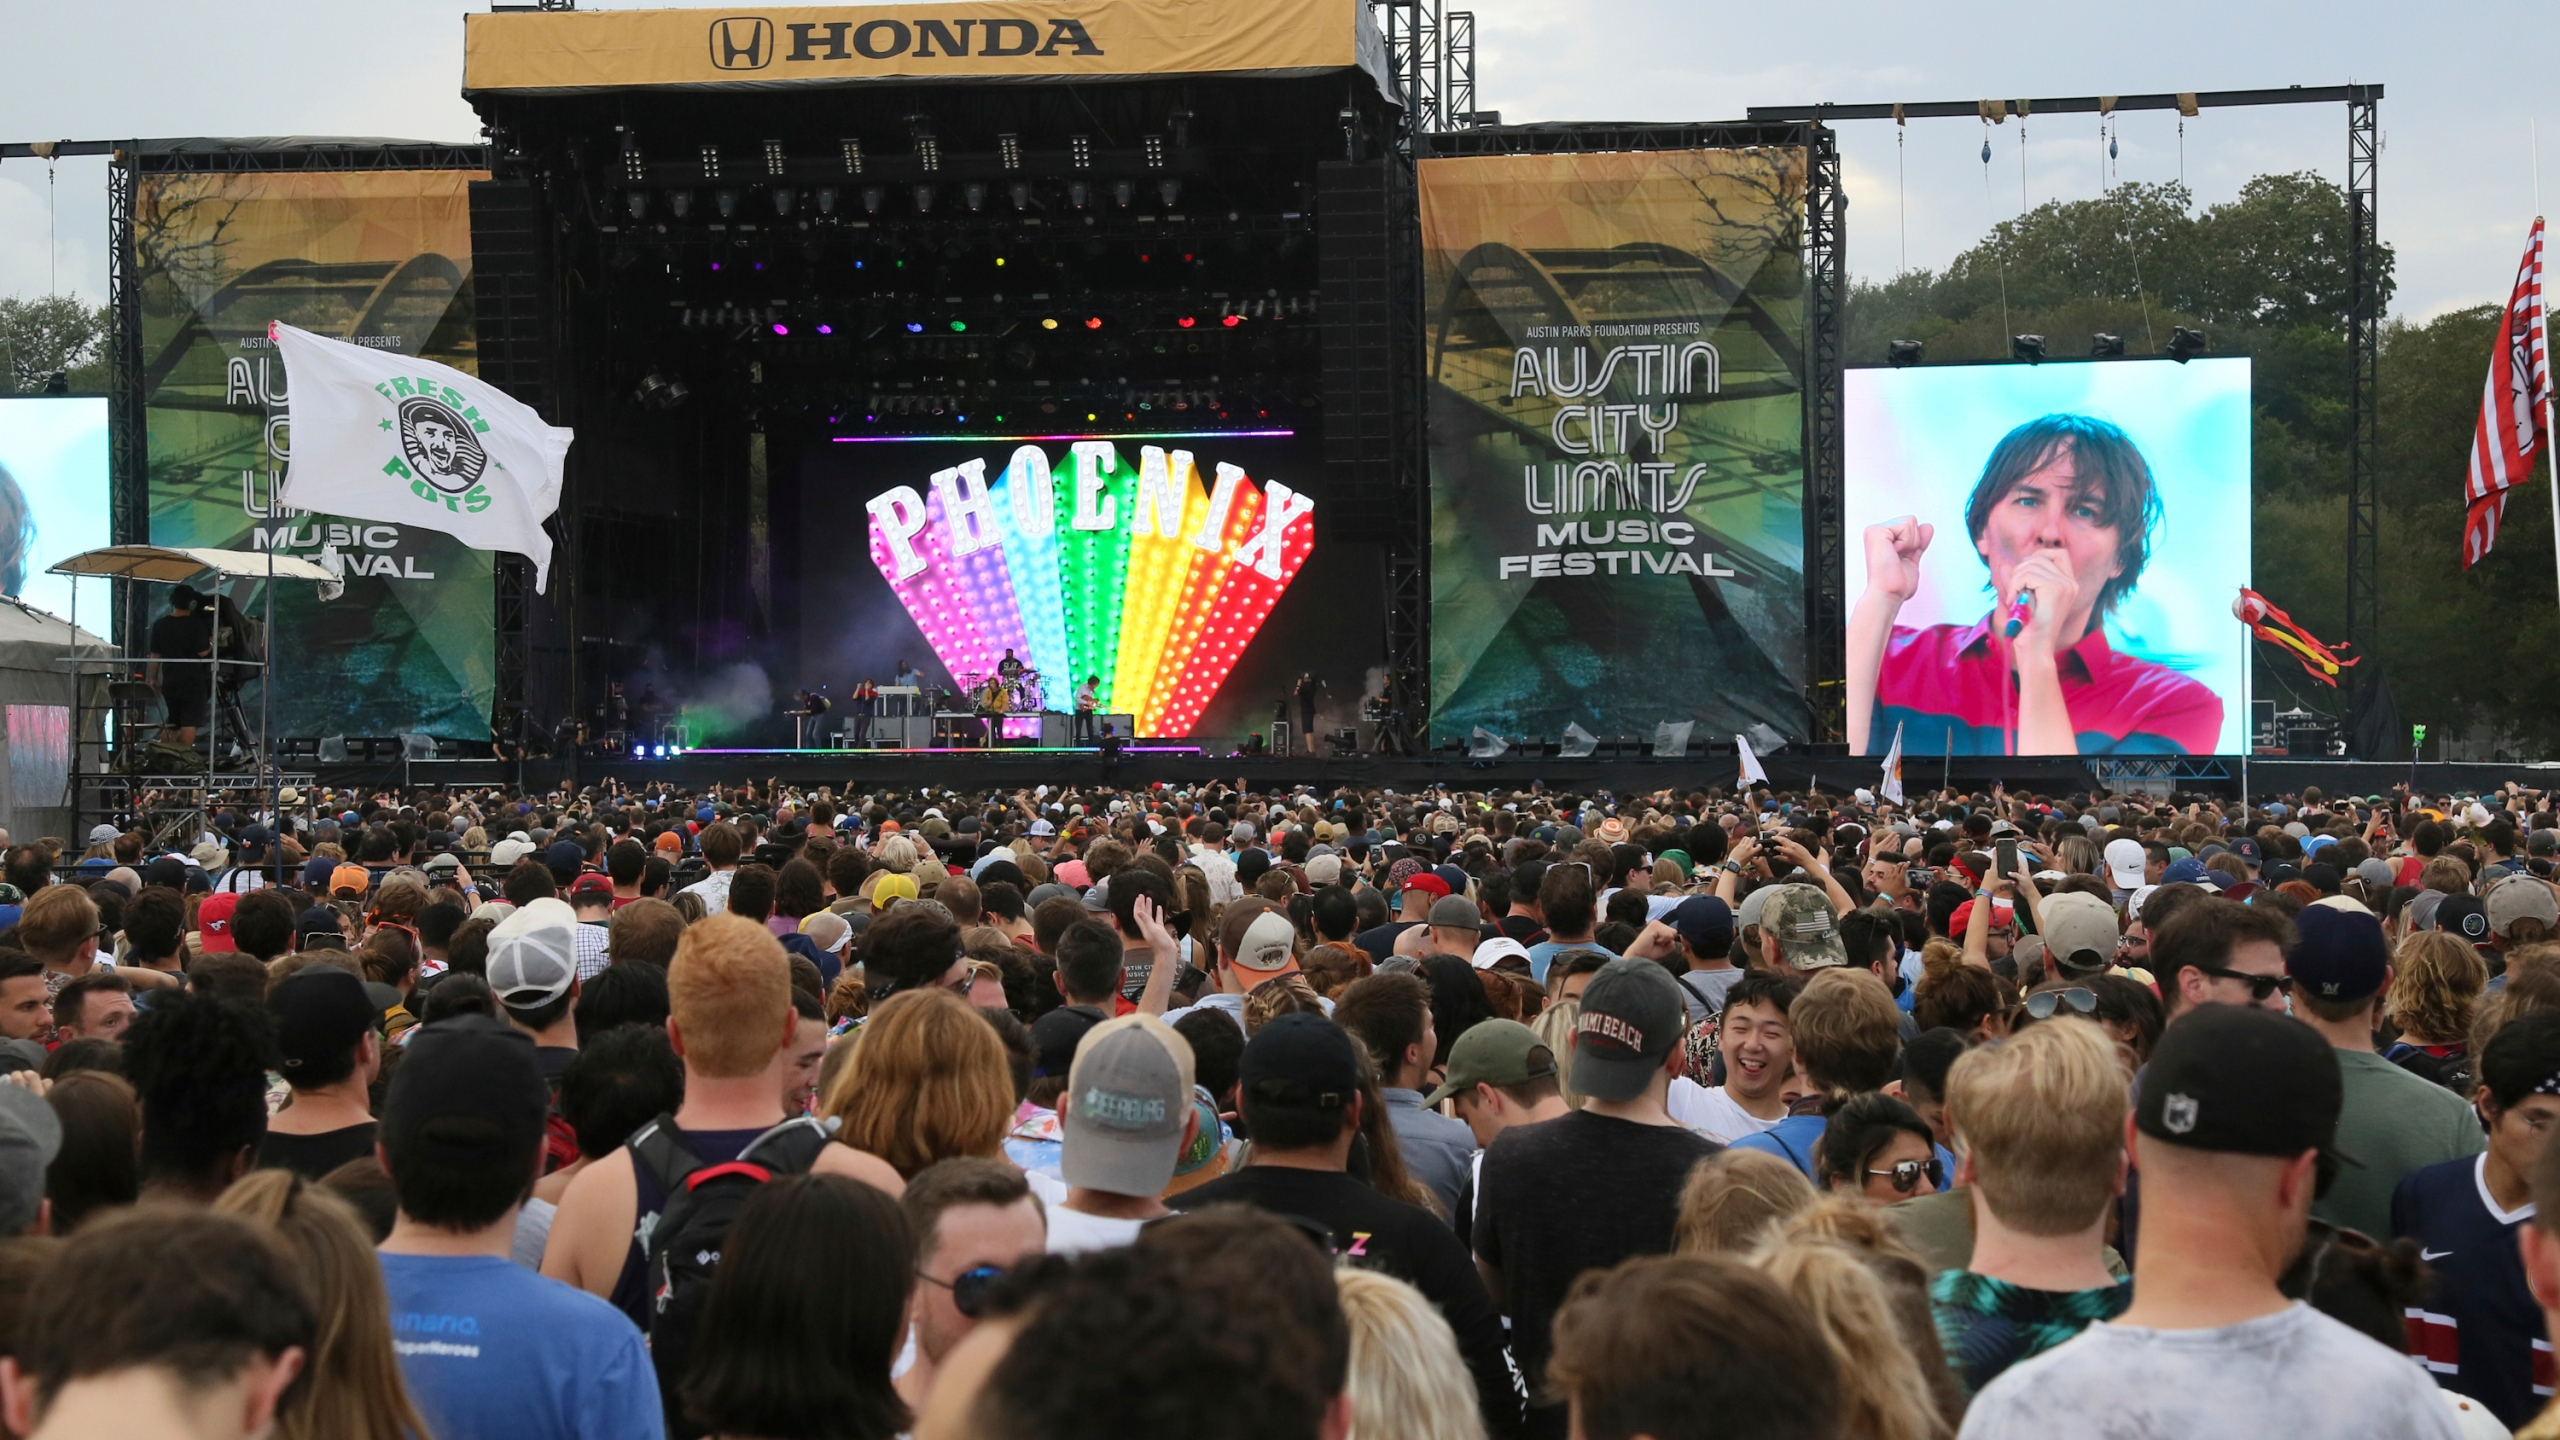 Phoenix performs on Day 3 of the Austin City Limits Music Festival's first weekend on Sunday, Oct. 7, 2018, in Austin, Texas. (Photo by Jack Plunkett/Invision/AP)